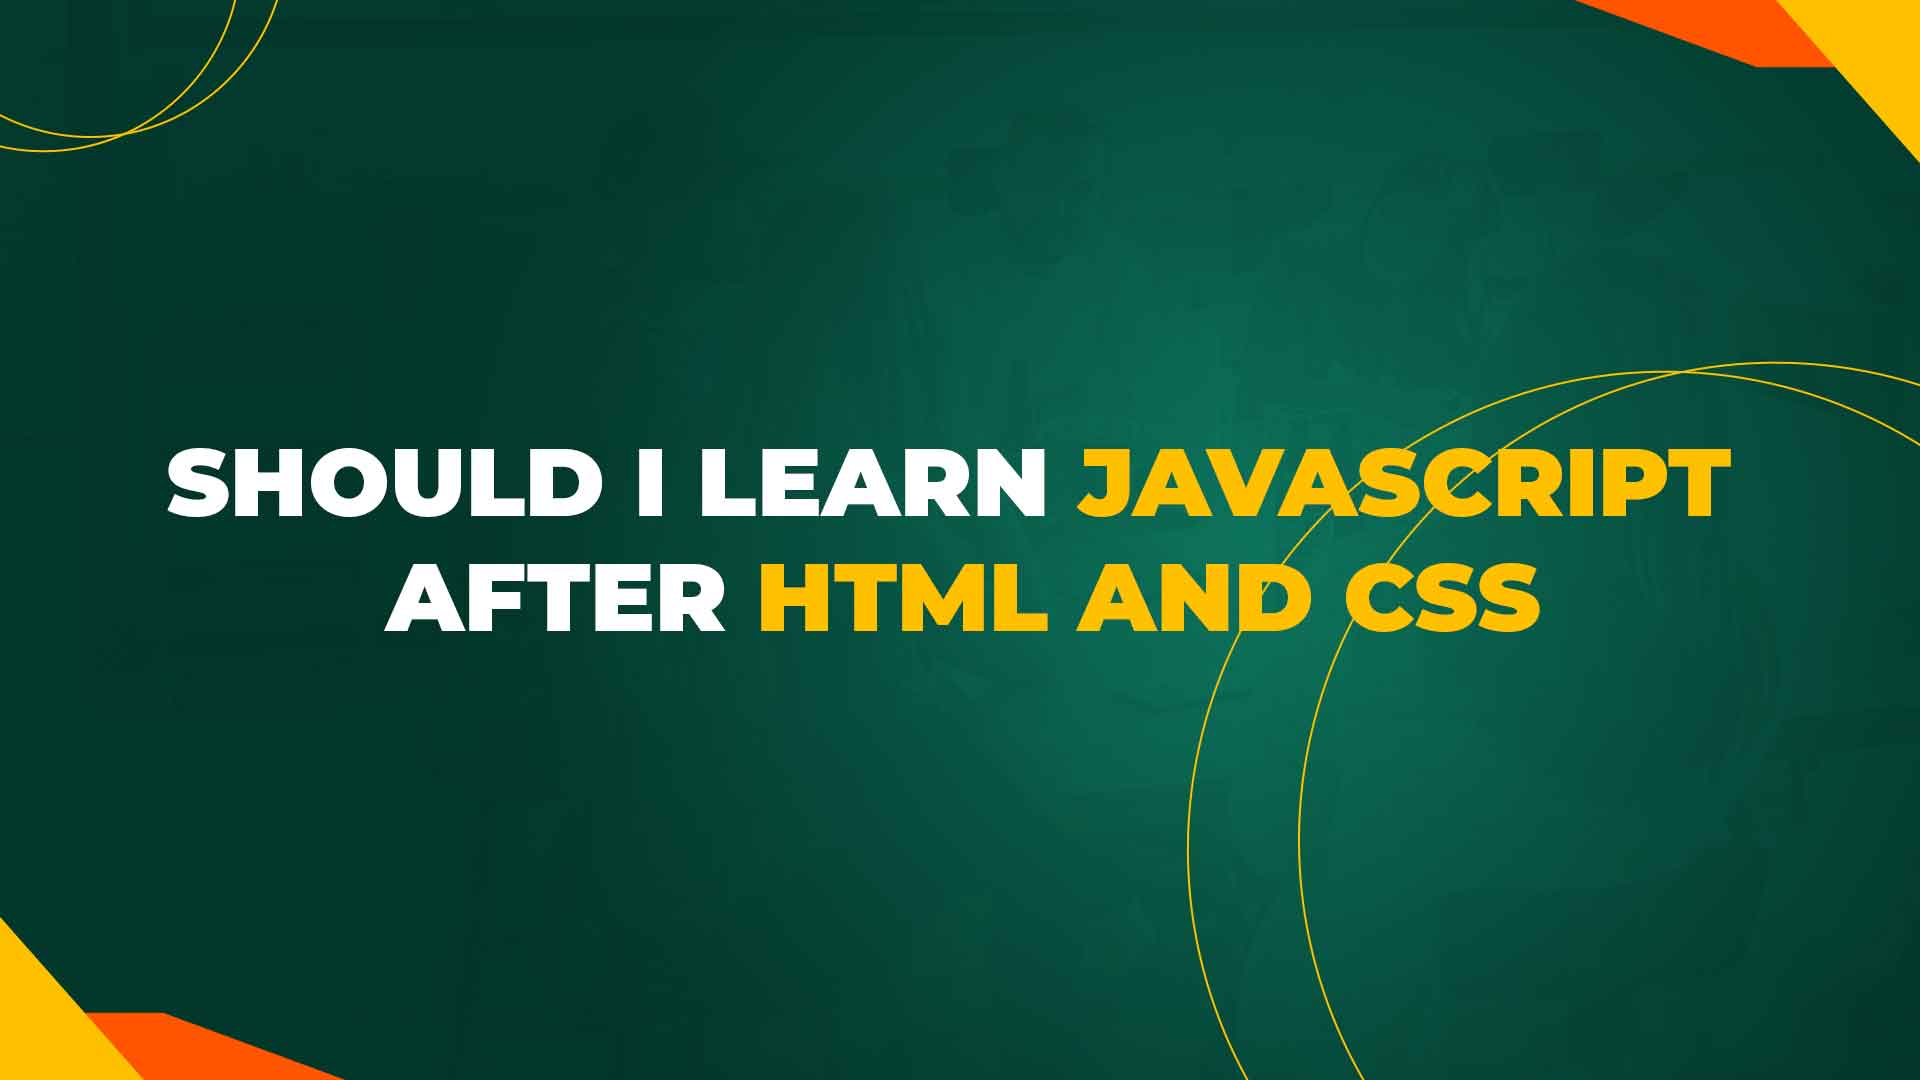 Should I learn JavaScript after HTML and CSS